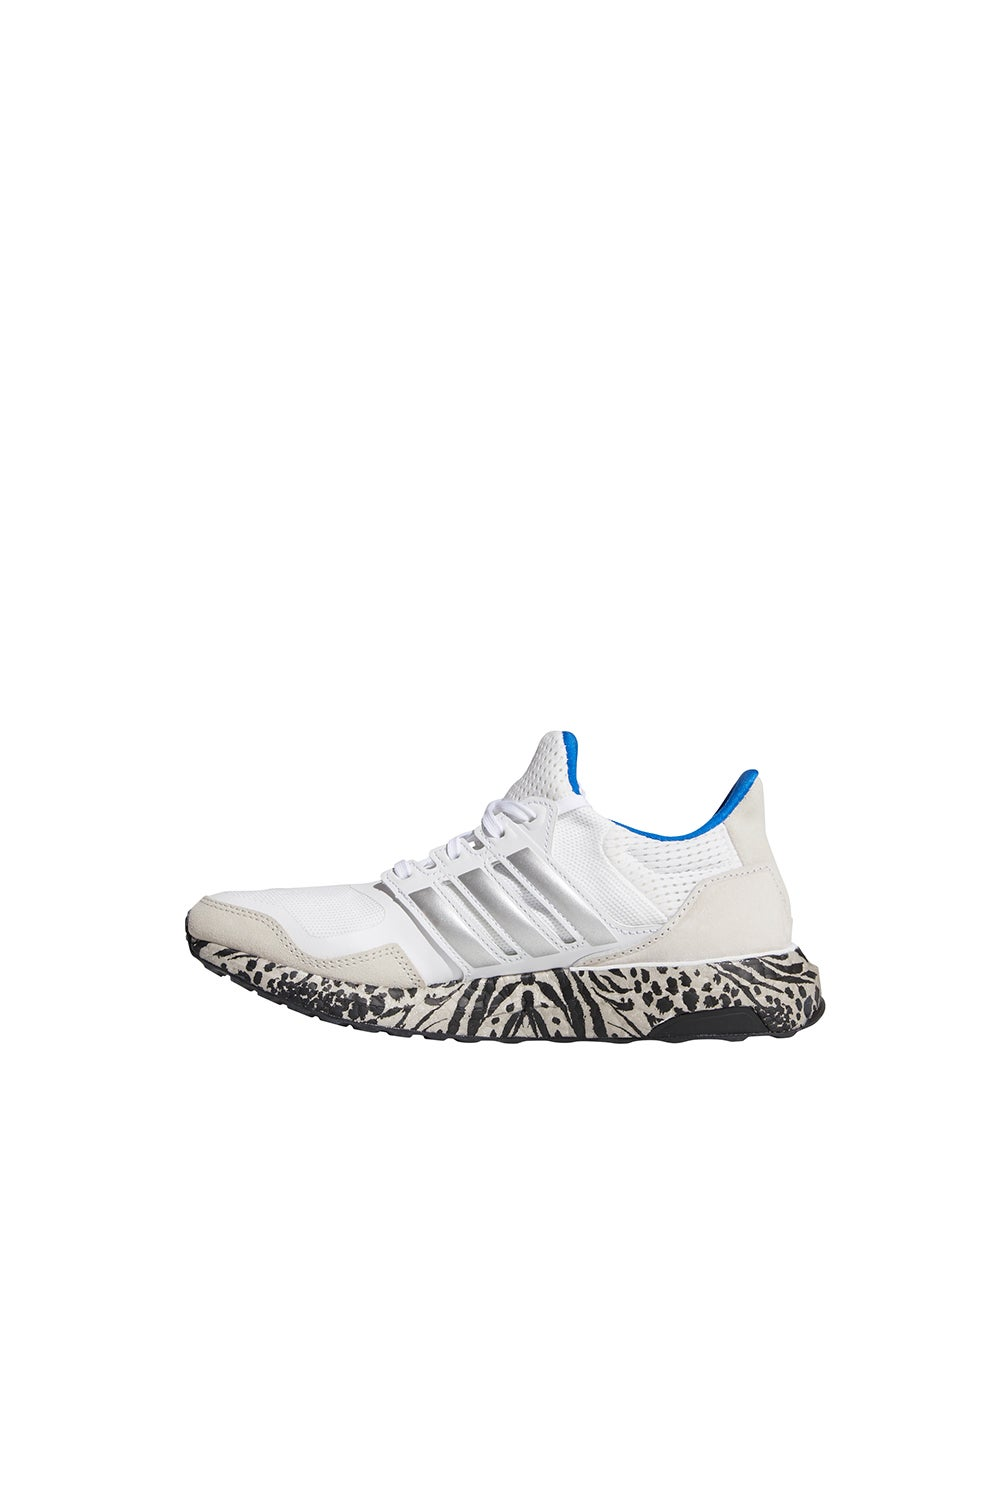 adidas Ultraboost DNA Cloud White/Silver Metallic/Glow Blue